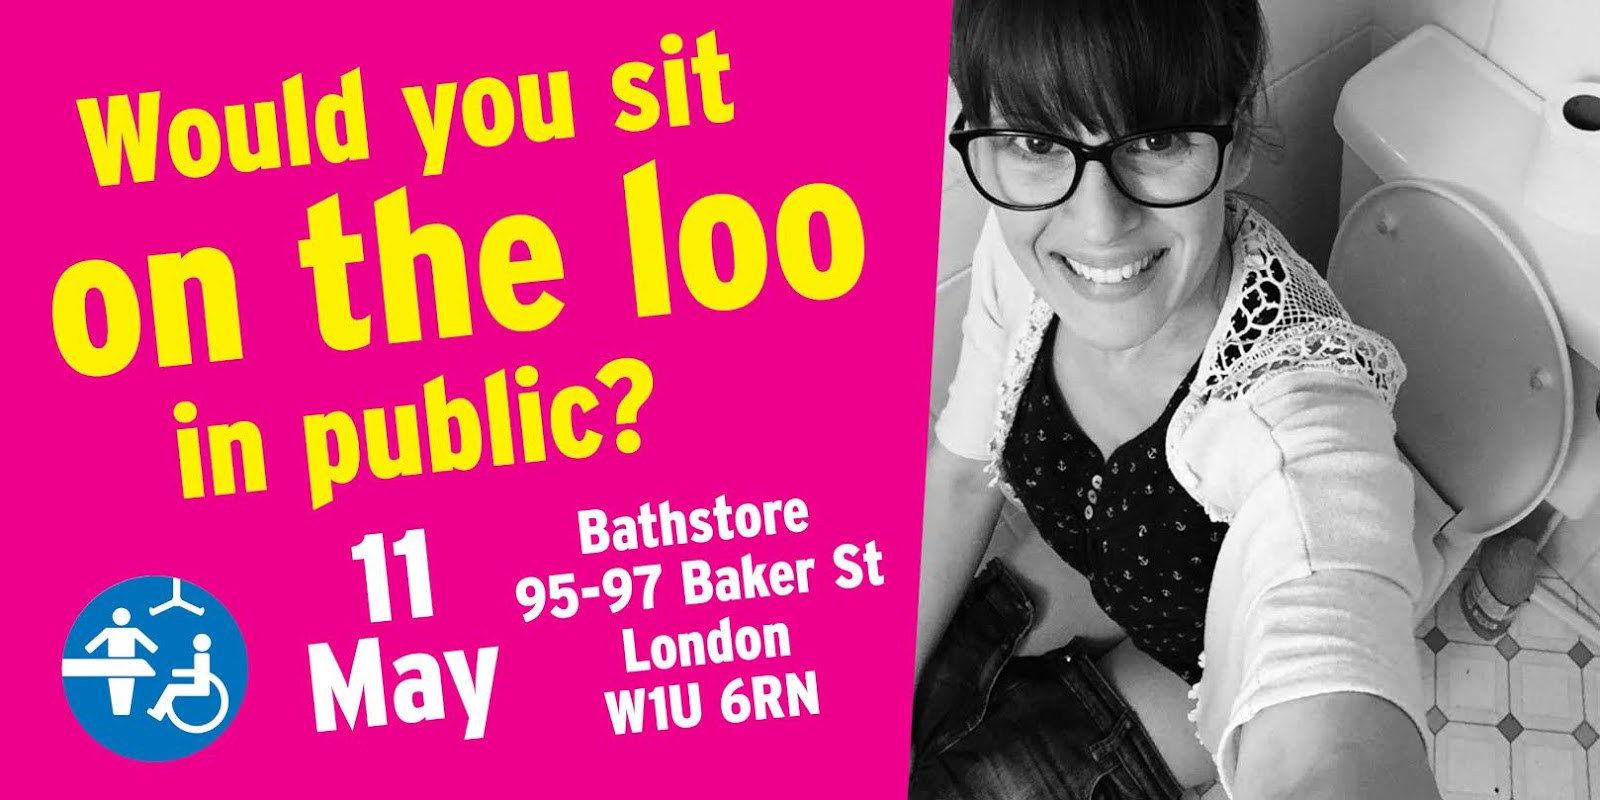 Woman sitting on a toilet smiling. Text reads 'Would you sit on the loo in public?'